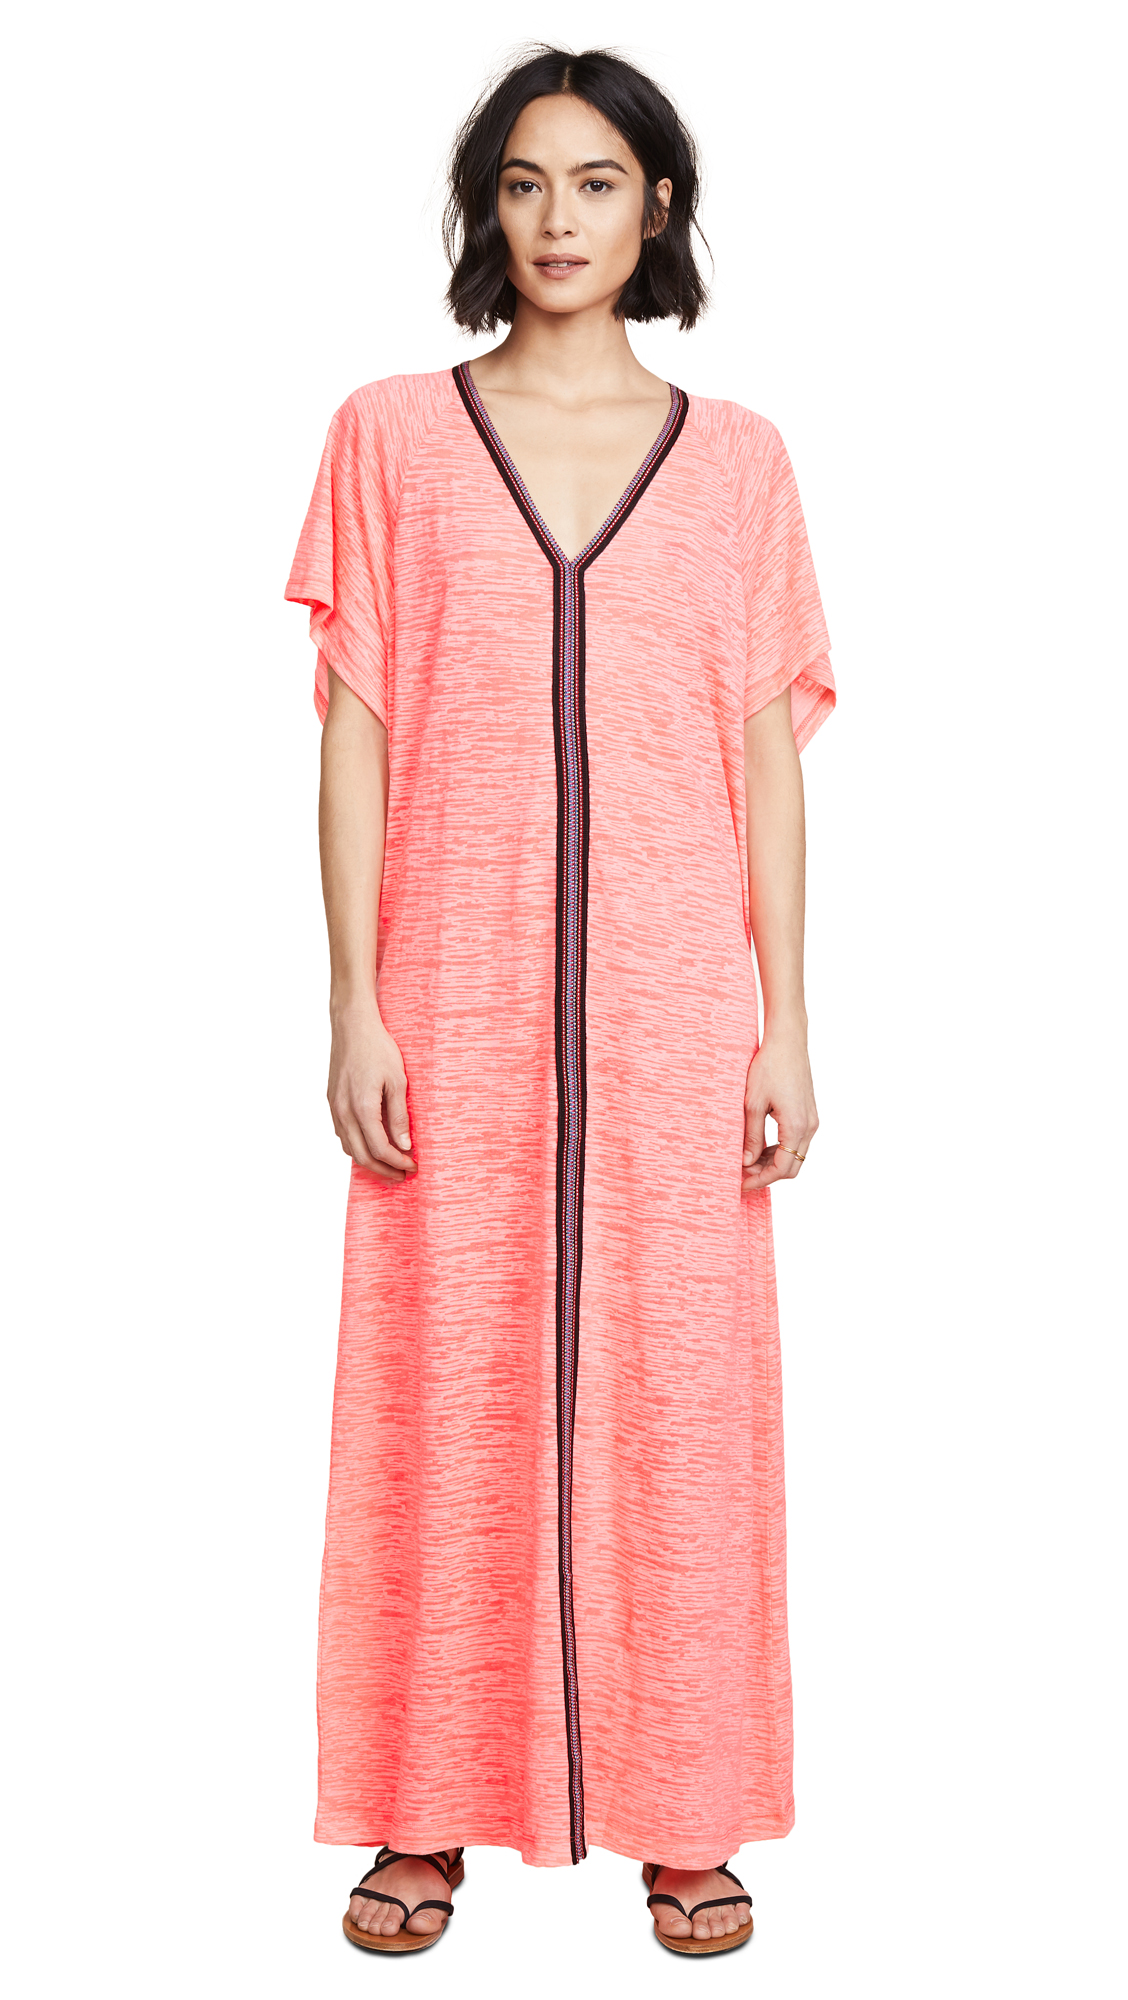 Pitusa Abaya Maxi Dress - Hot Pink